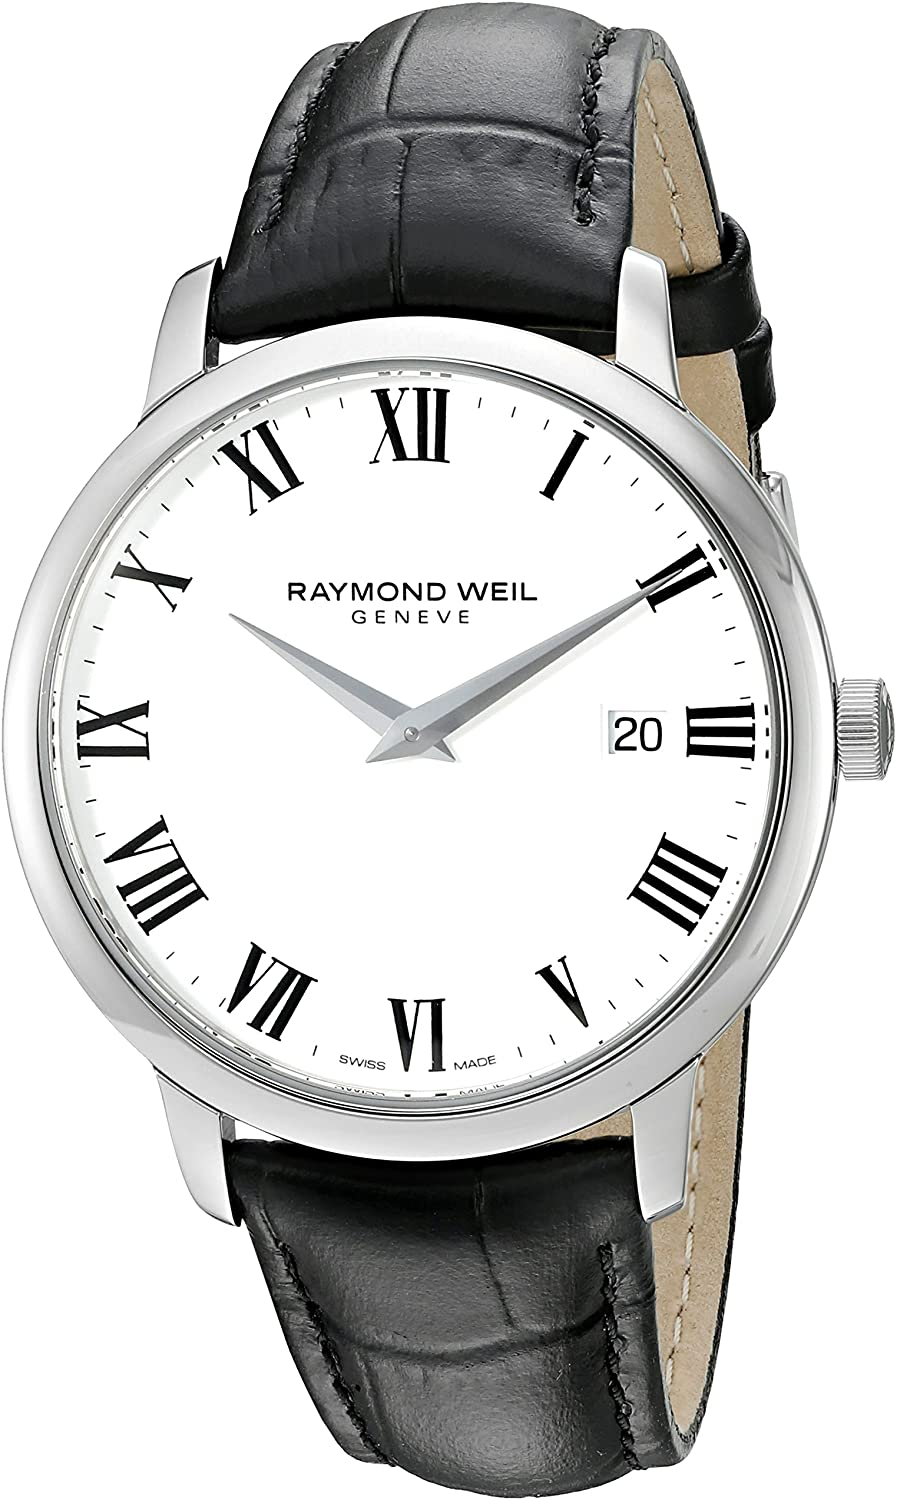 Raymond Weil Men's 'Toccata' Swiss Quartz Stainless Steel and Leather Watch, Color:Black (Model: 5488-STC-00300)